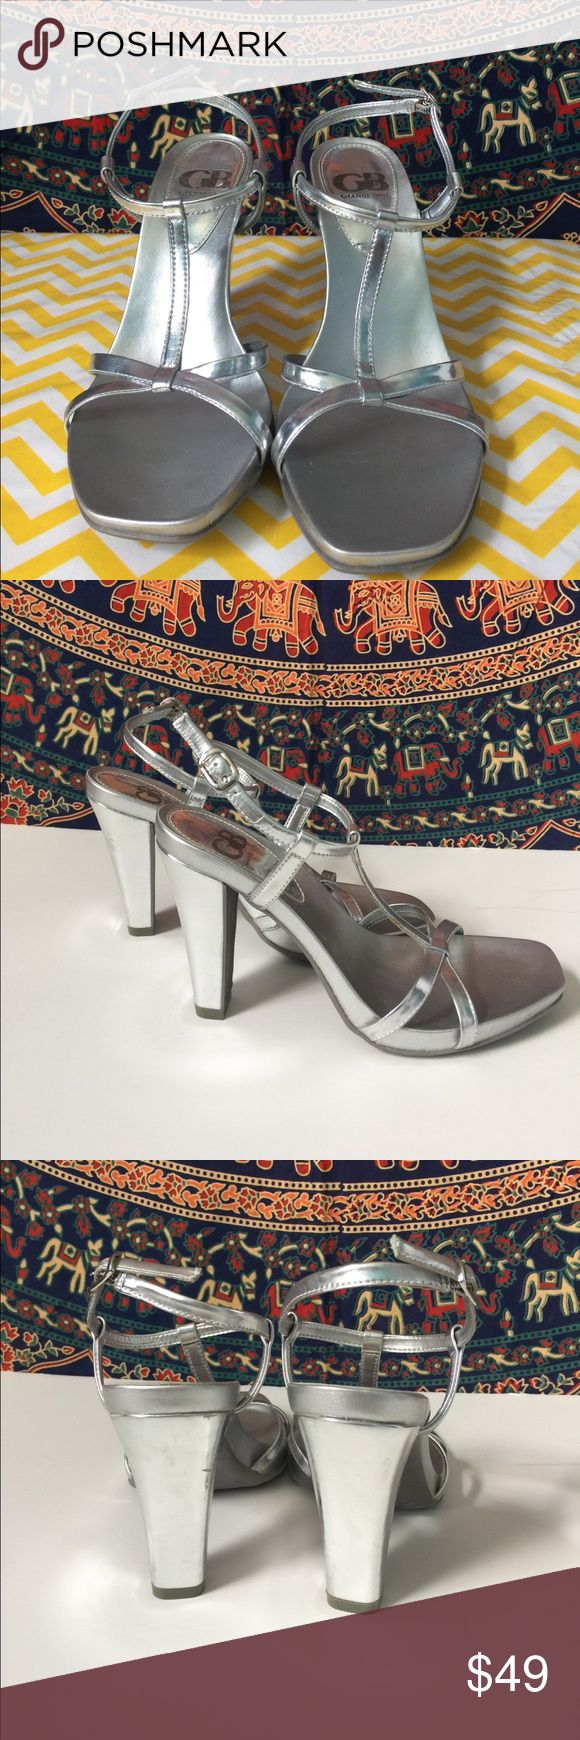 Silver Gianni Bini heels Pretty silver dress sandals. Only worn for a formal event. Size 7. Gianni Bini Shoes